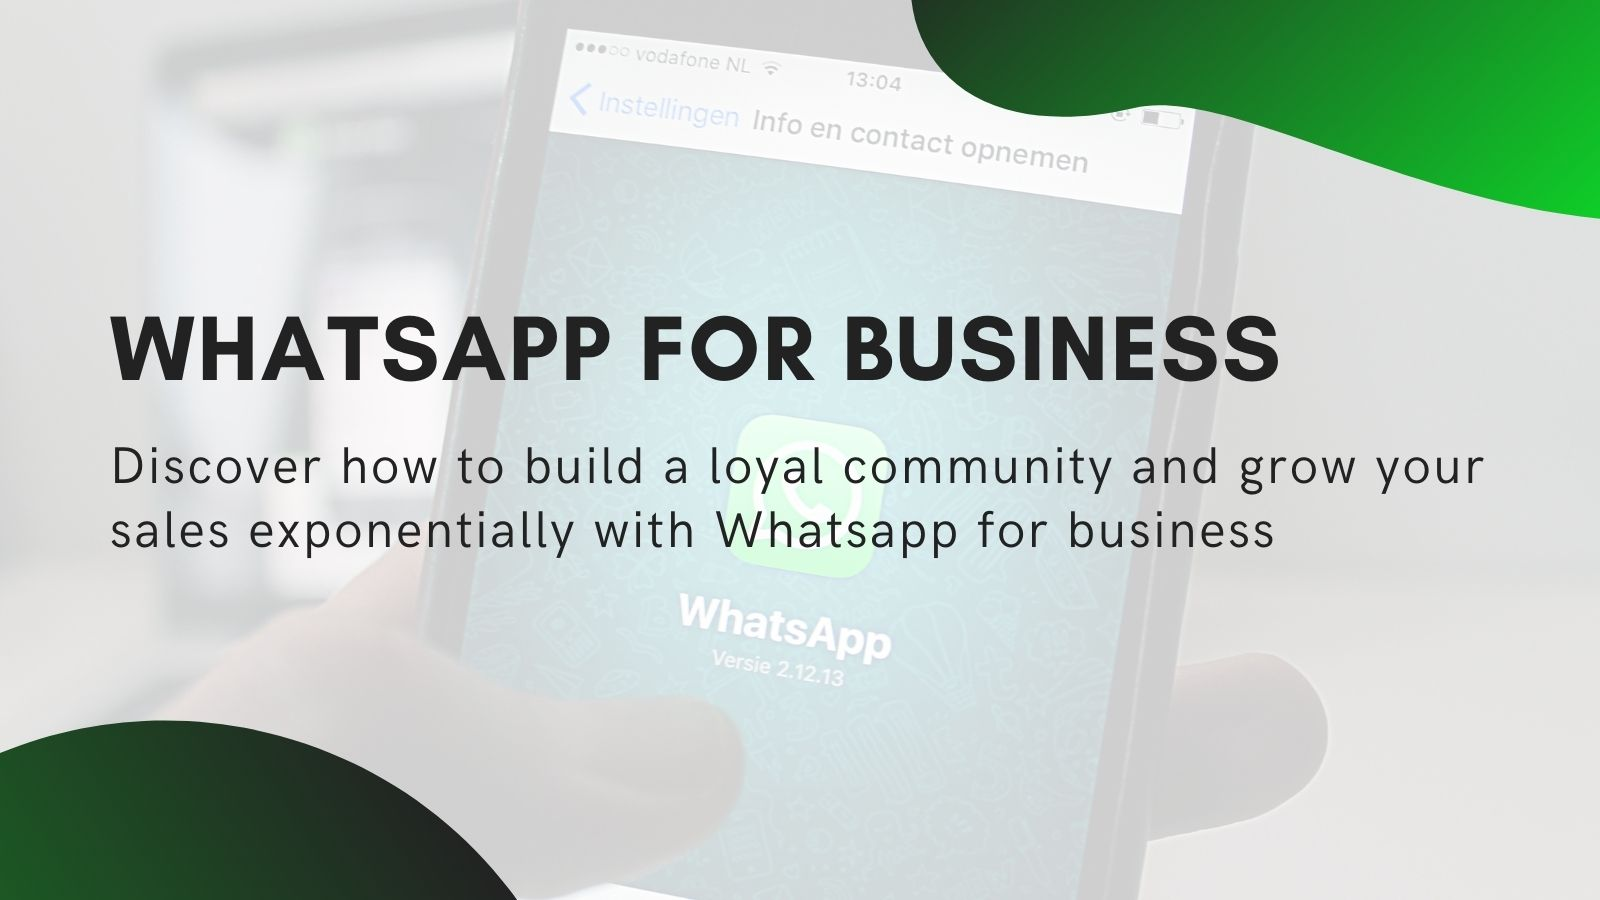 Whatsapp for business (coming soon!)